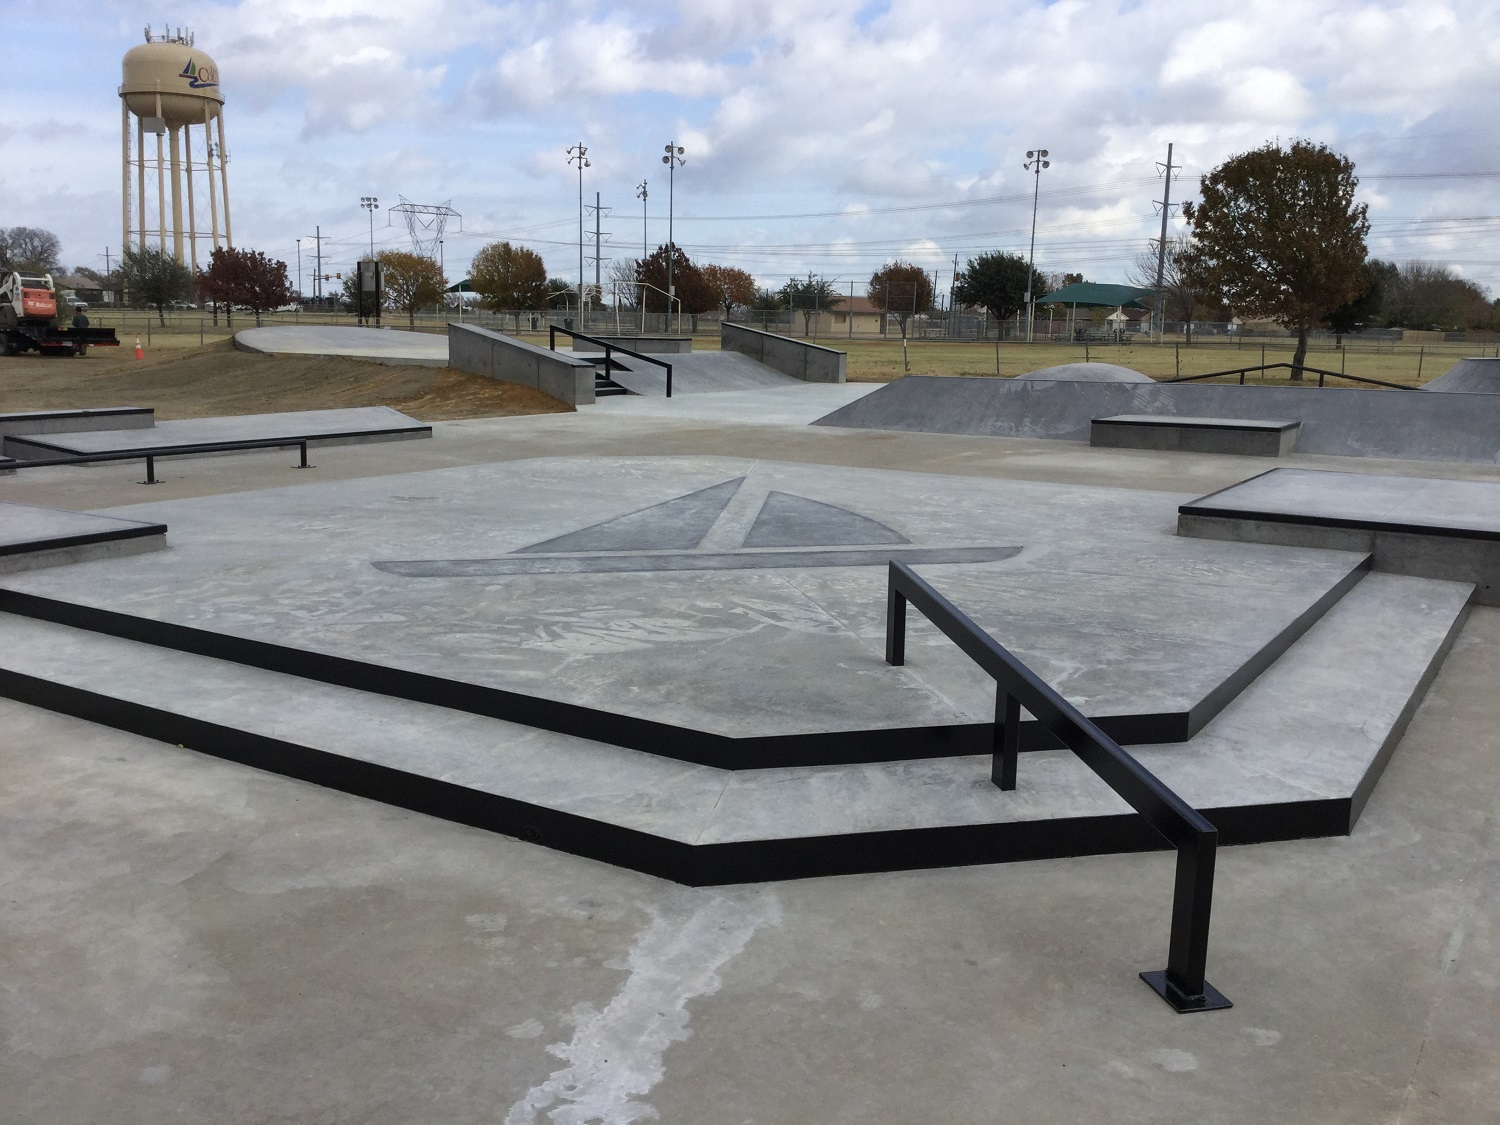 Updated features built on top of the existing slab